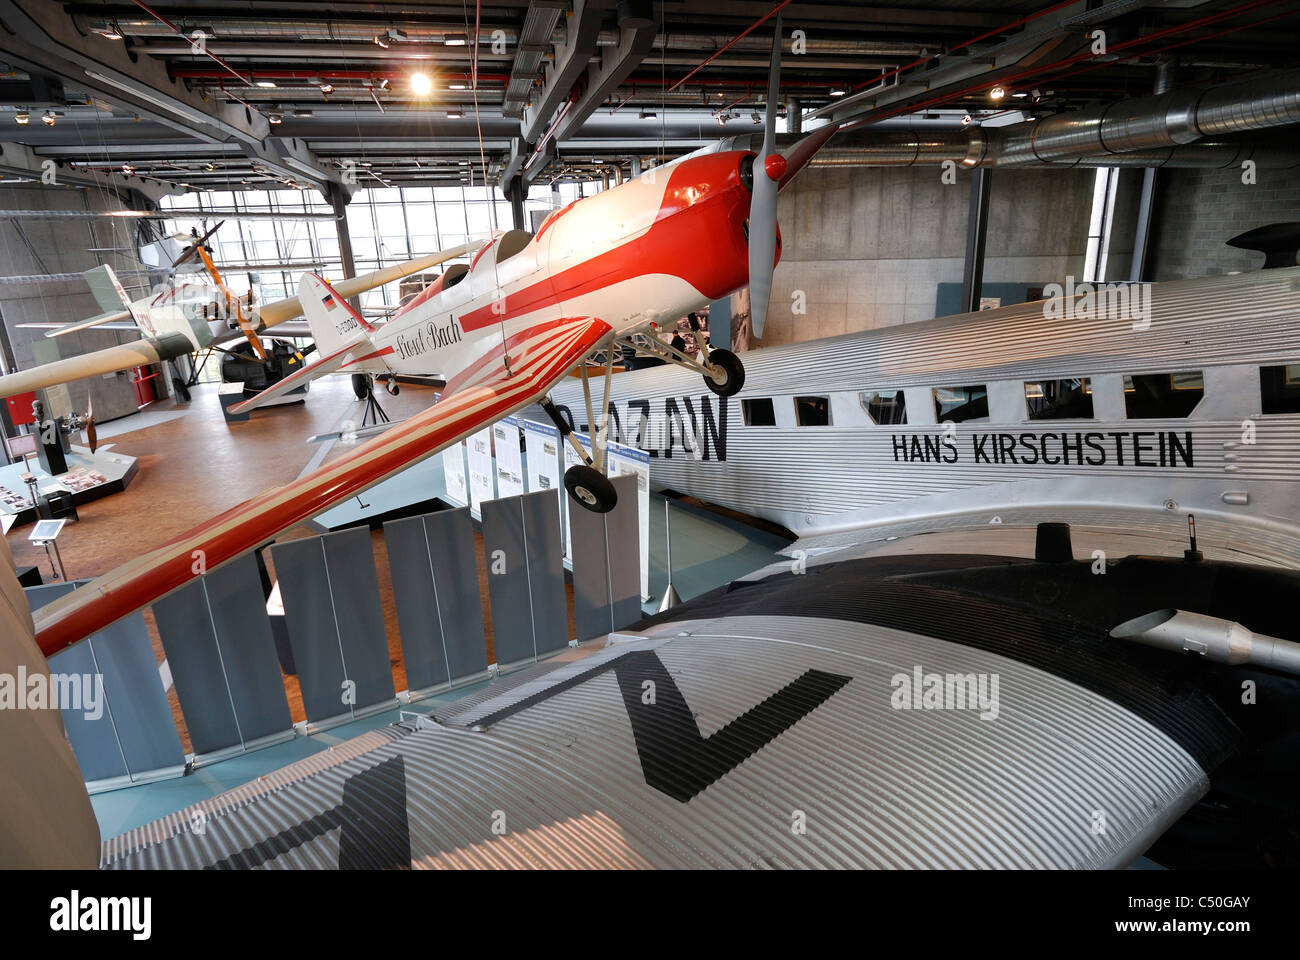 Berlin. Germany. The aviation hall in the Deutsches Technikmuseum / German Museum of Technology. Stock Photo